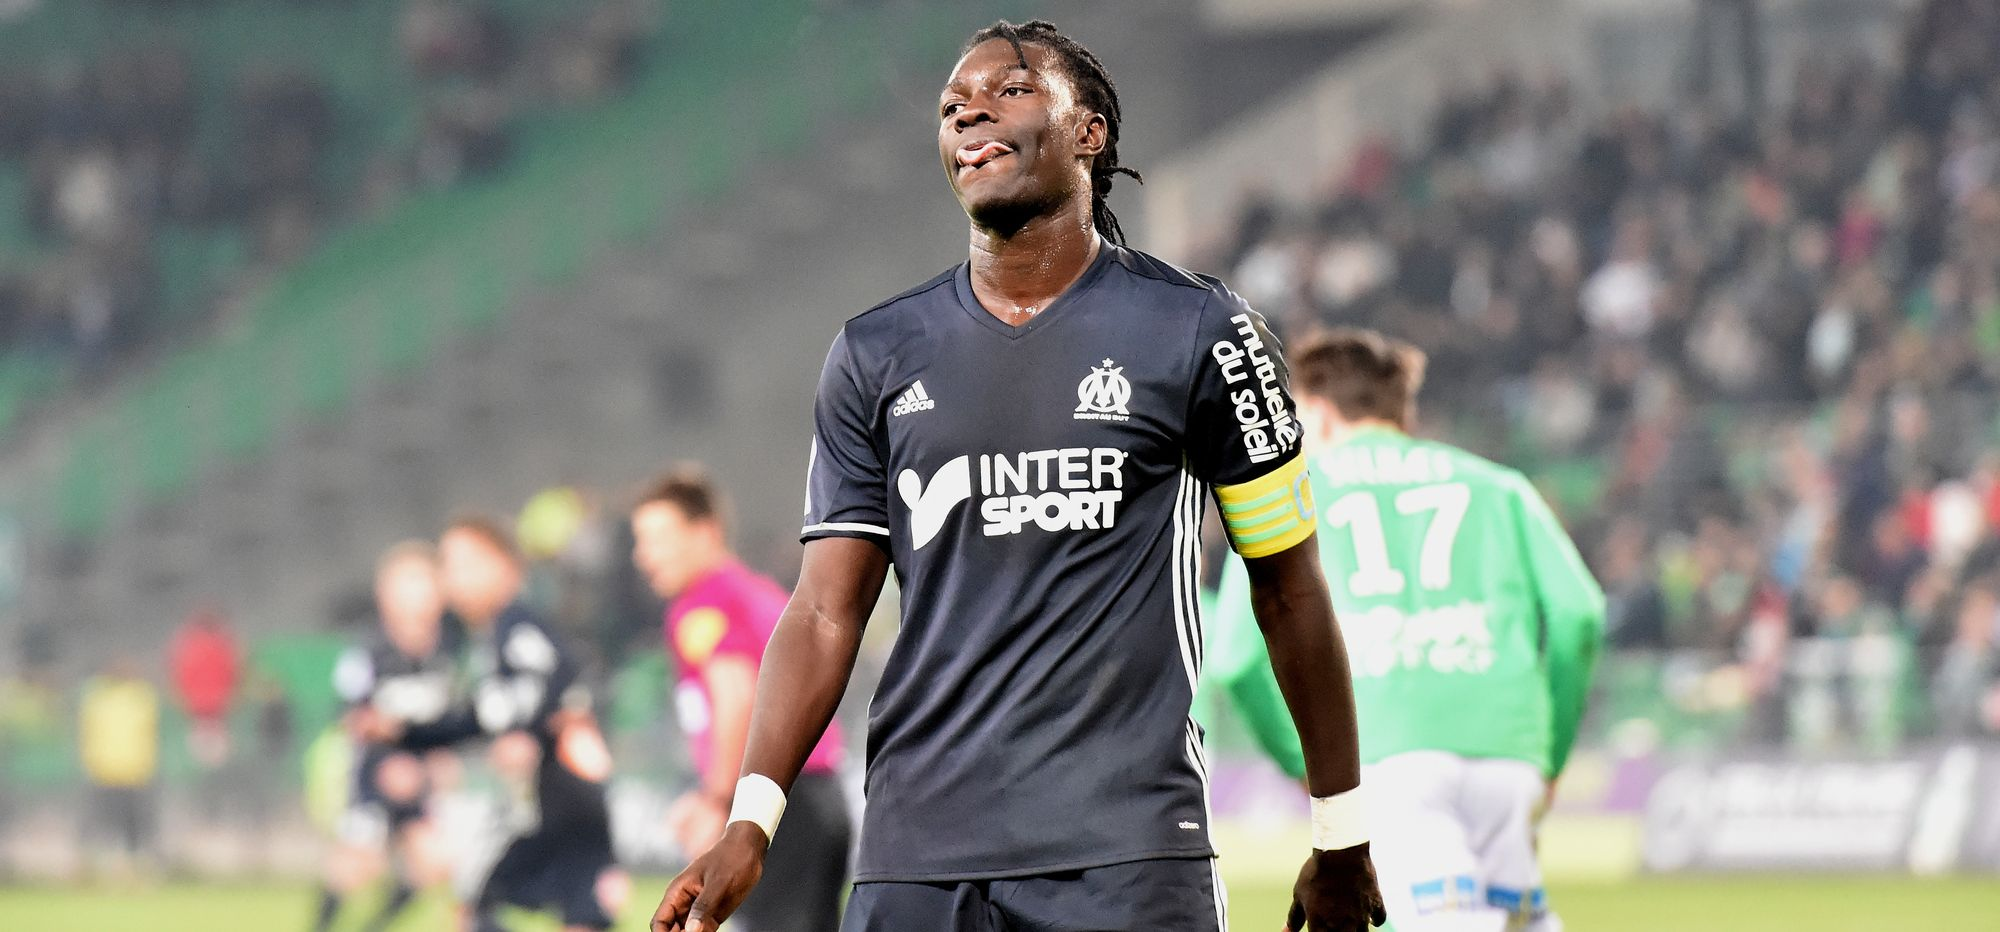 Football - Ligue 1 - Gomis, un leader maladroit et contesté à l'OM